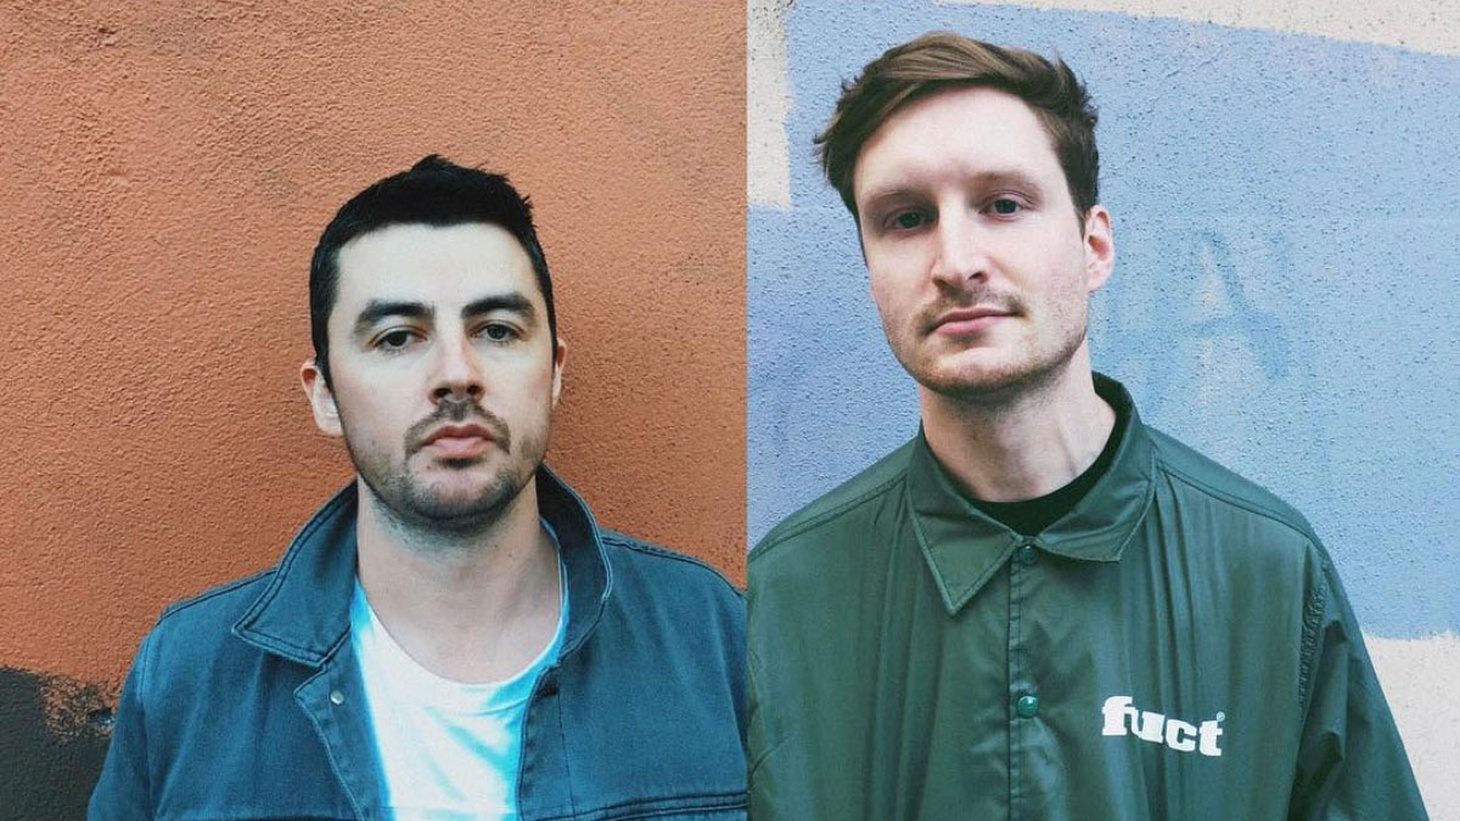 Luces is Felix Bloxsom, otherwise known as Plastic Plates, and Caleb Cornett, a.k.a. Amtrac. Two talented producers who've collaborated to create house magic.